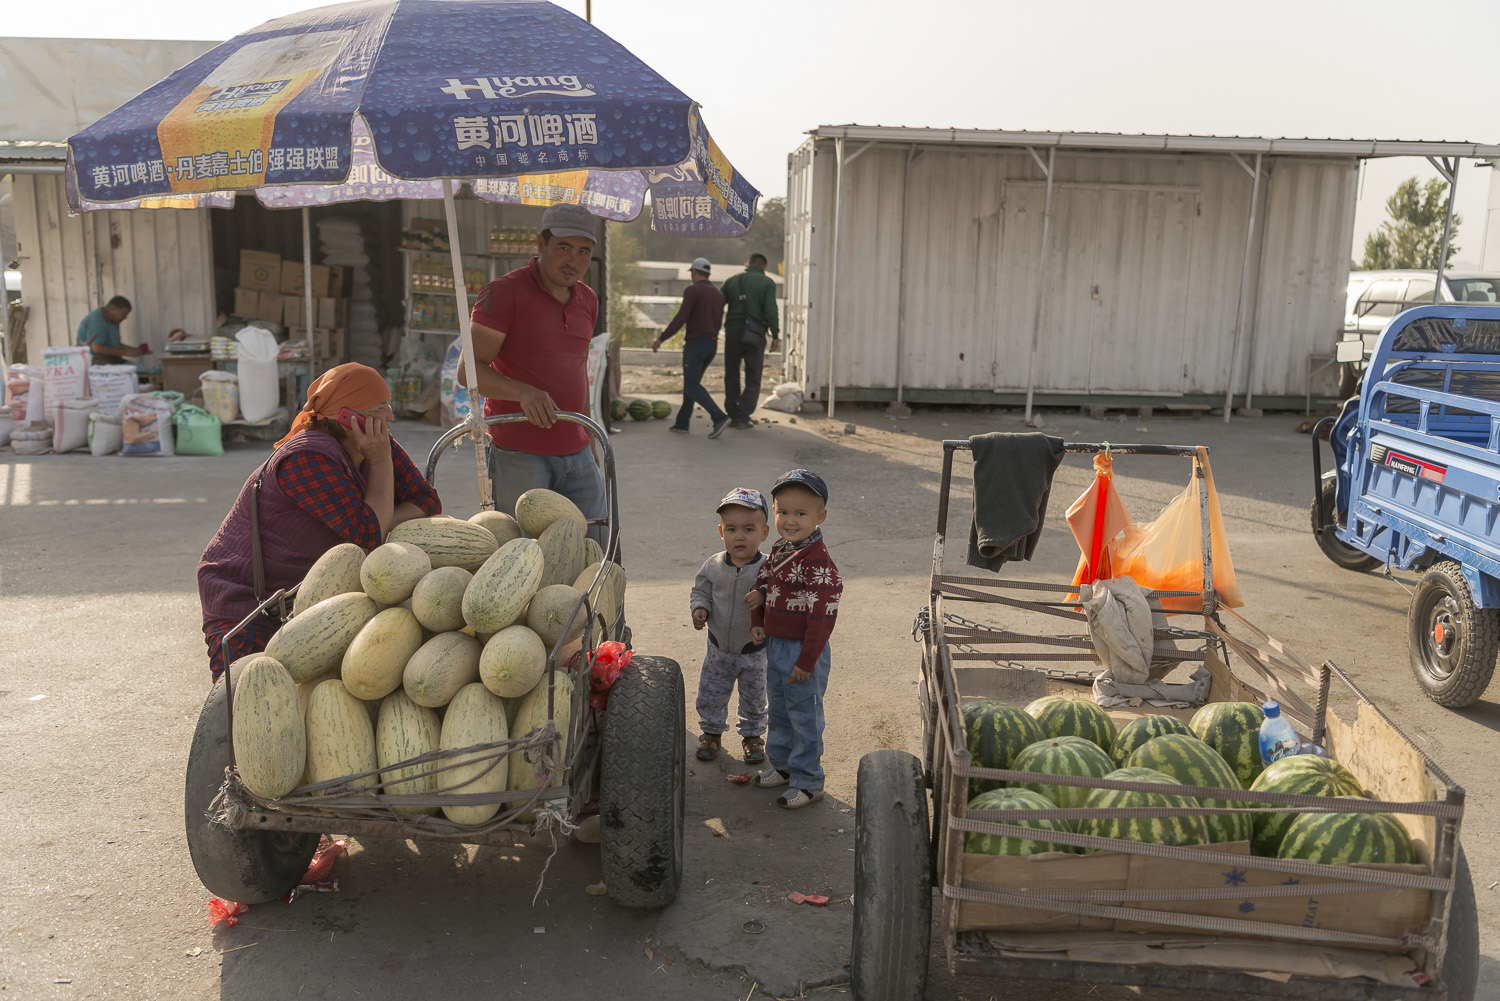 roadside-stalls-market-kyrgyzstan-travel-photography-watermelons-water-melons-osh.jpg